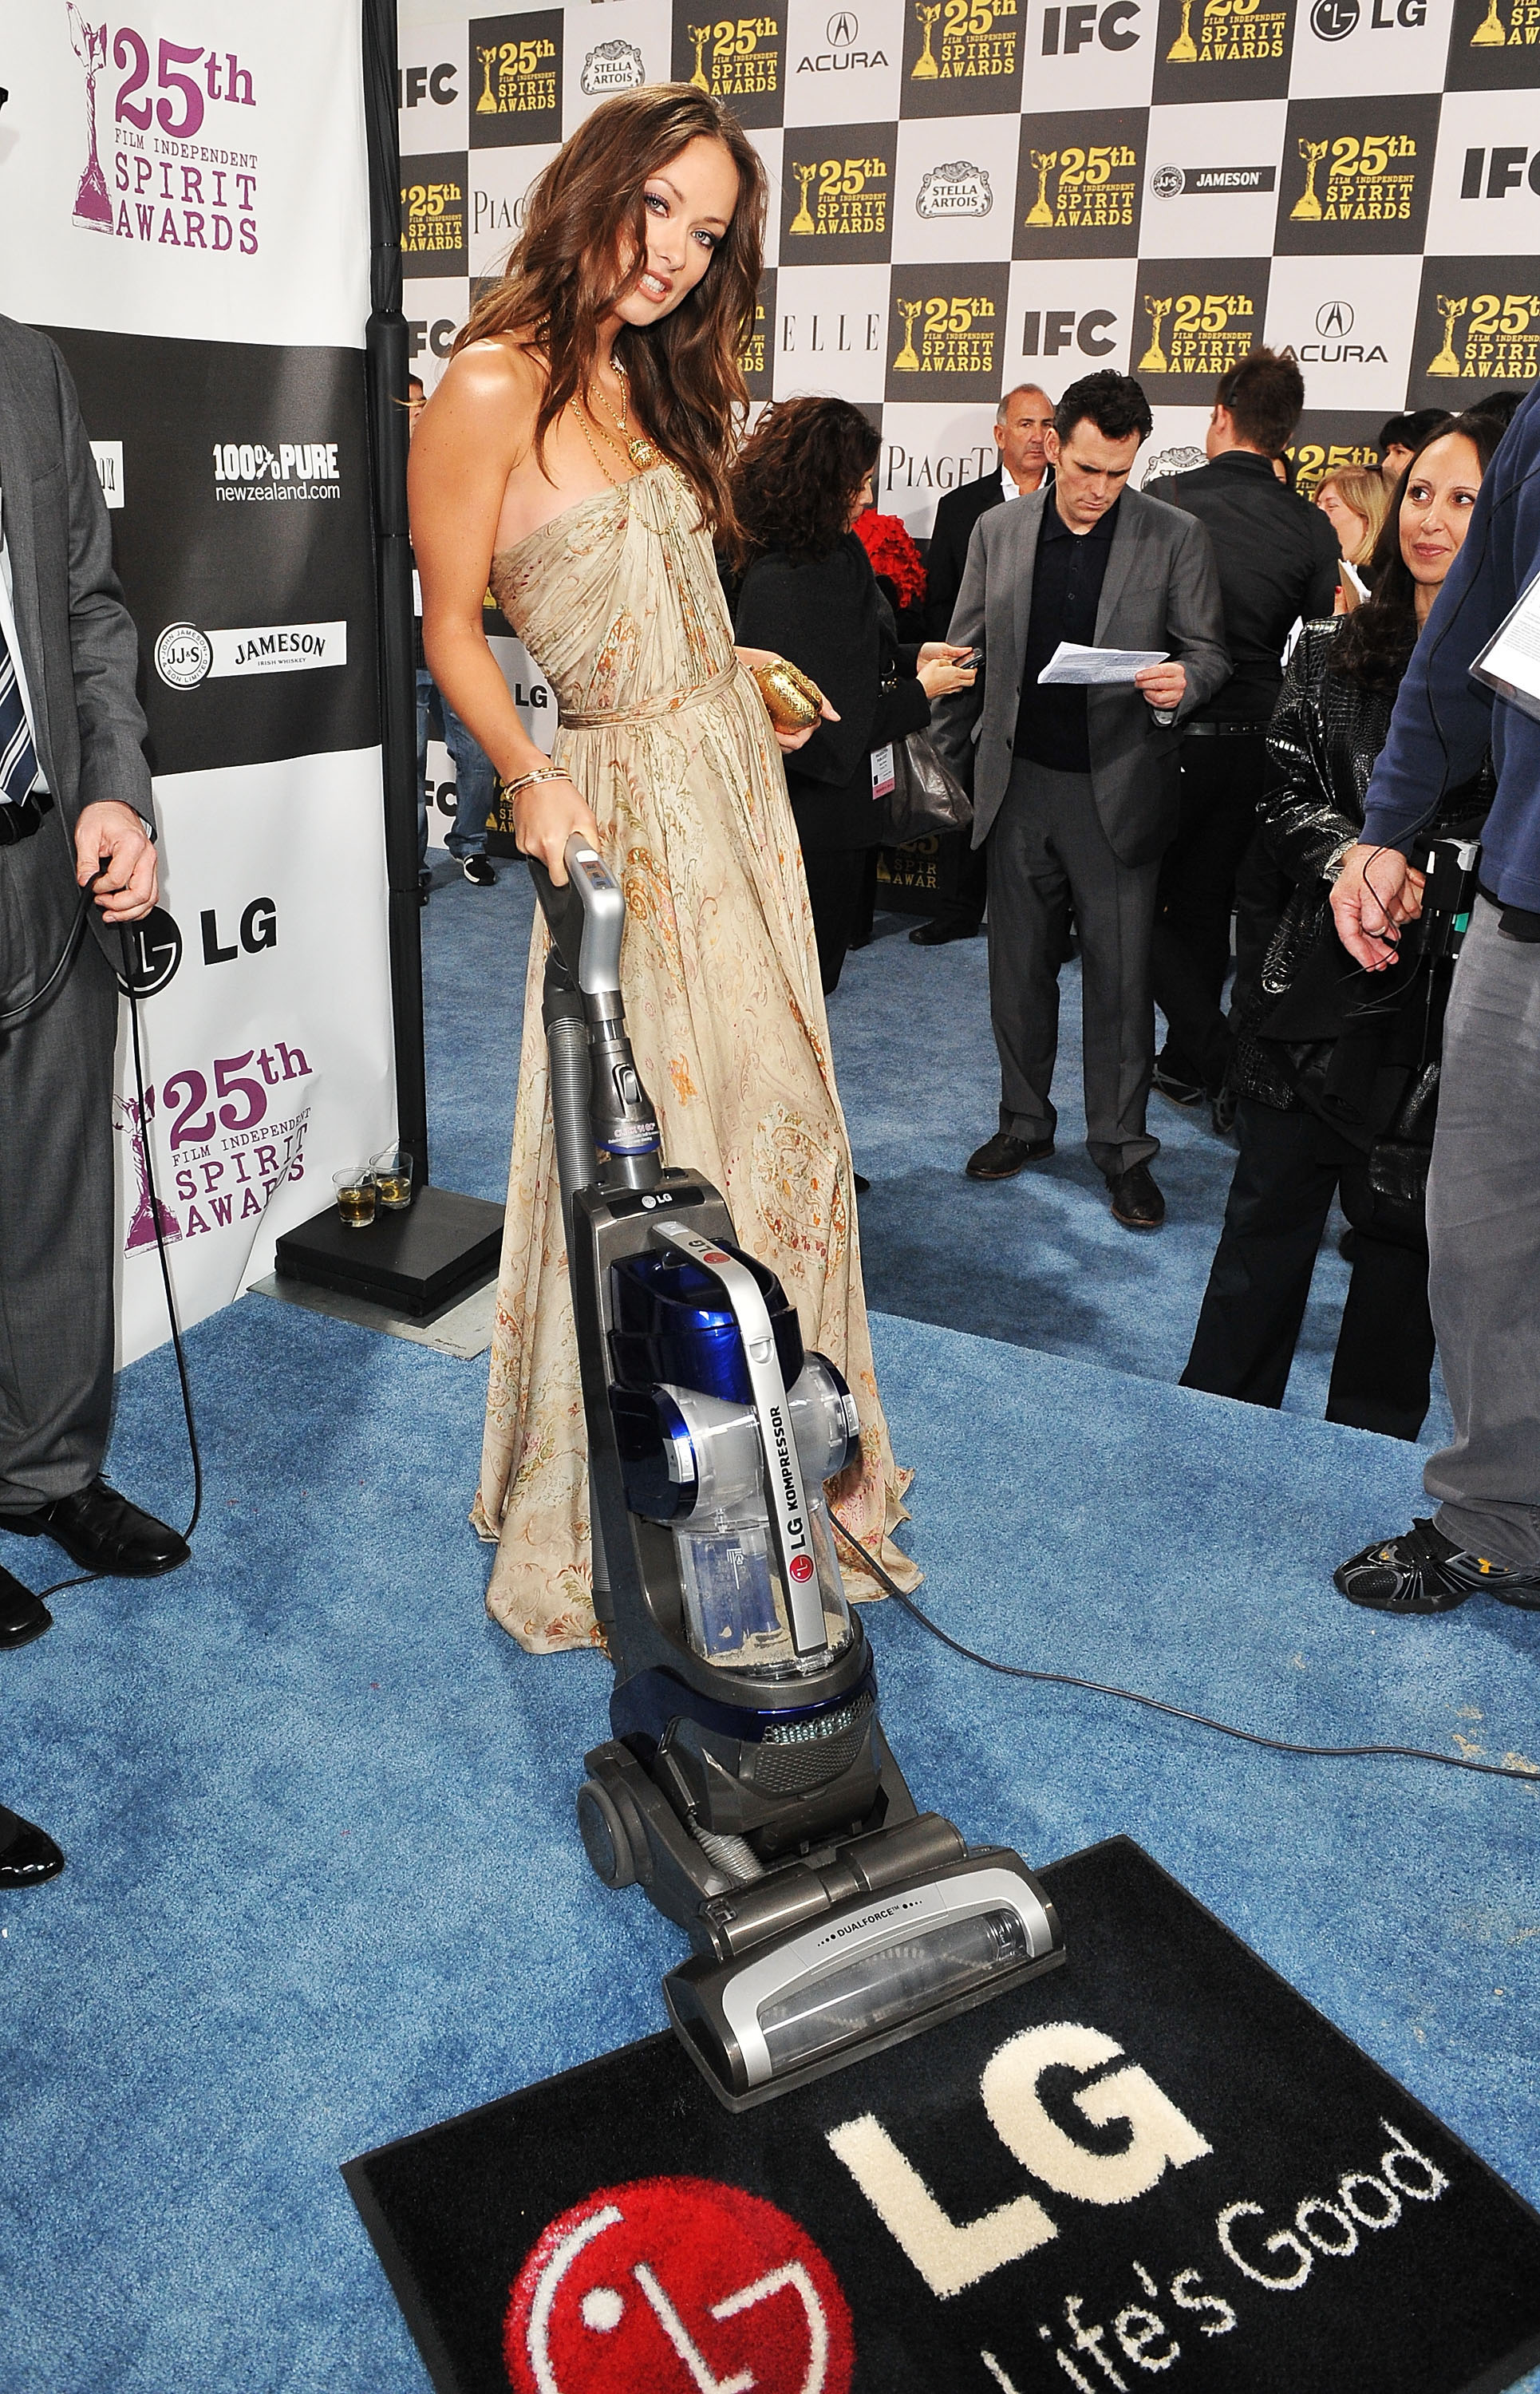 Olivia Wilde with the LG Electronics Kompressor Vacuum on 25th Spirit Awards Blue Carpet held at Nokia Theatre L.A. Live on March 5, 2010 in LA